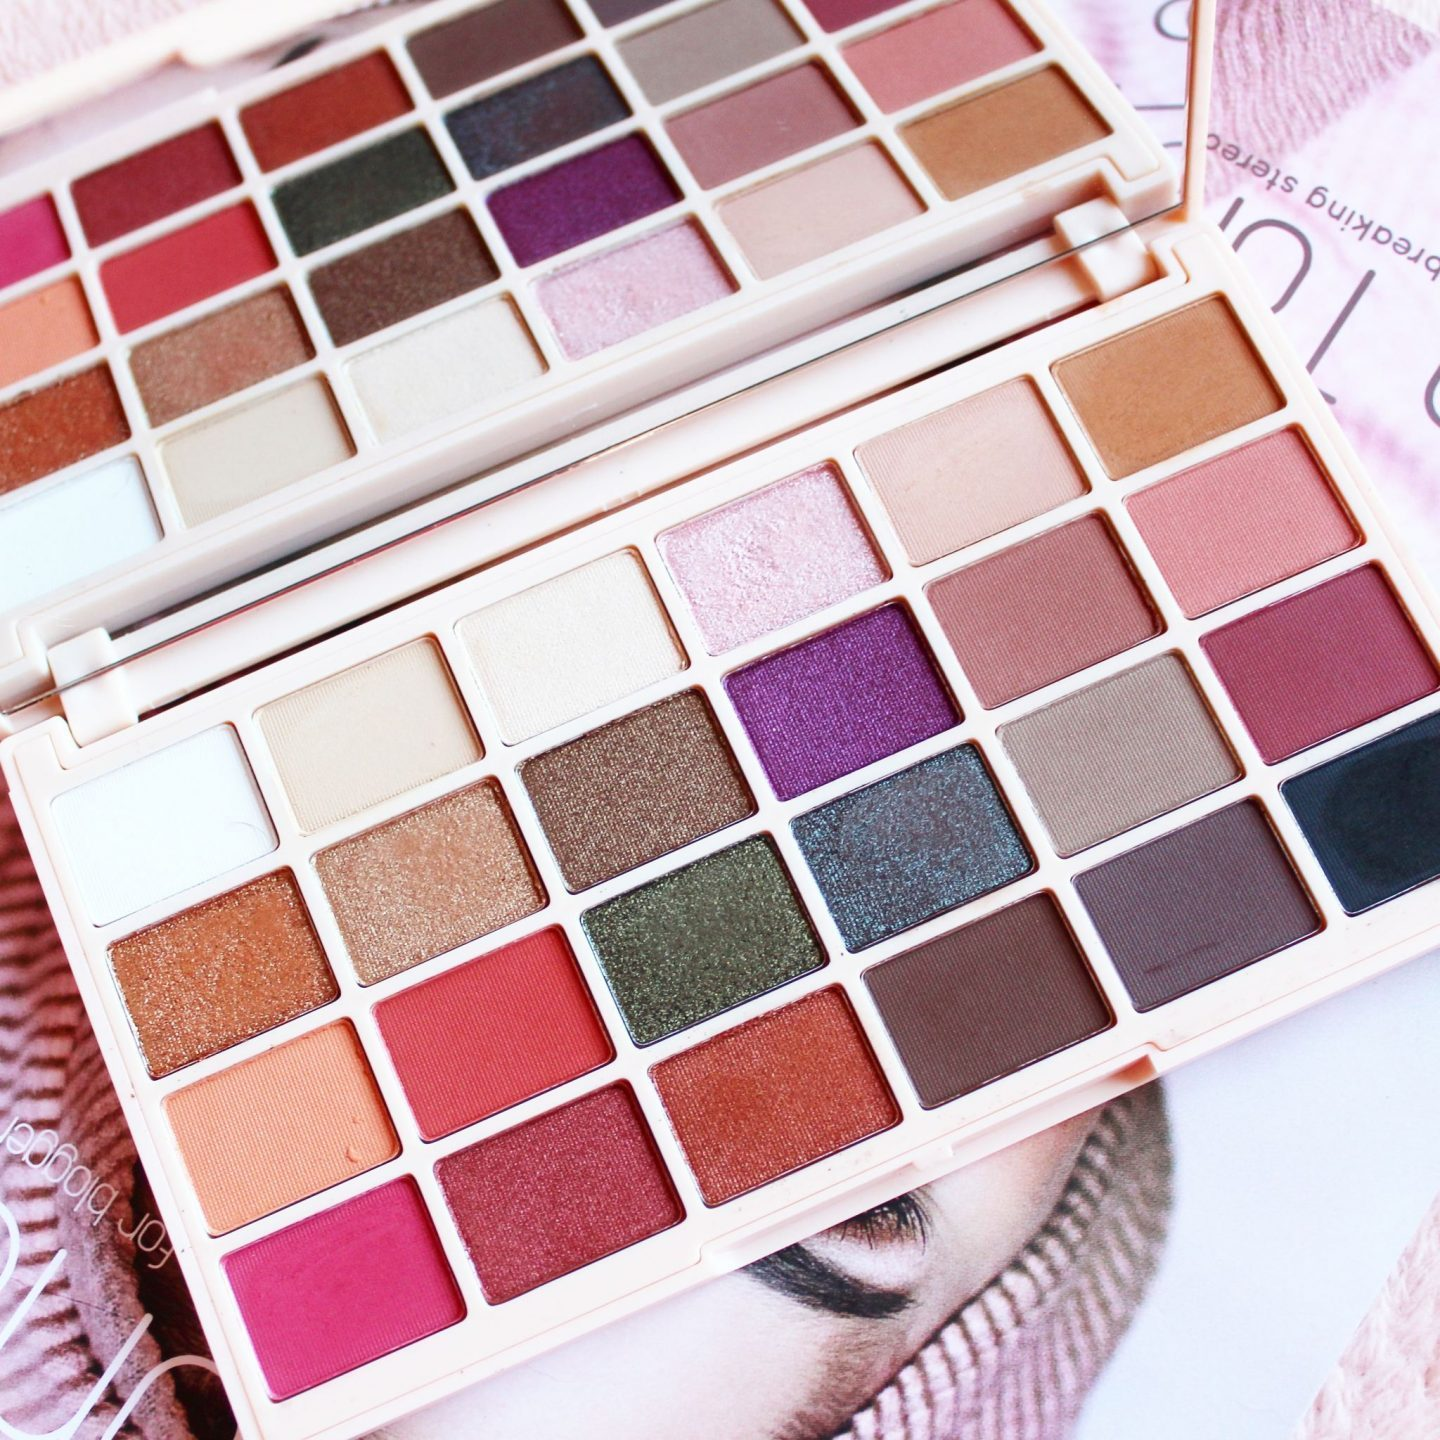 Soph X Makeup Revolution Eyeshadow Palette | Review & Swatches